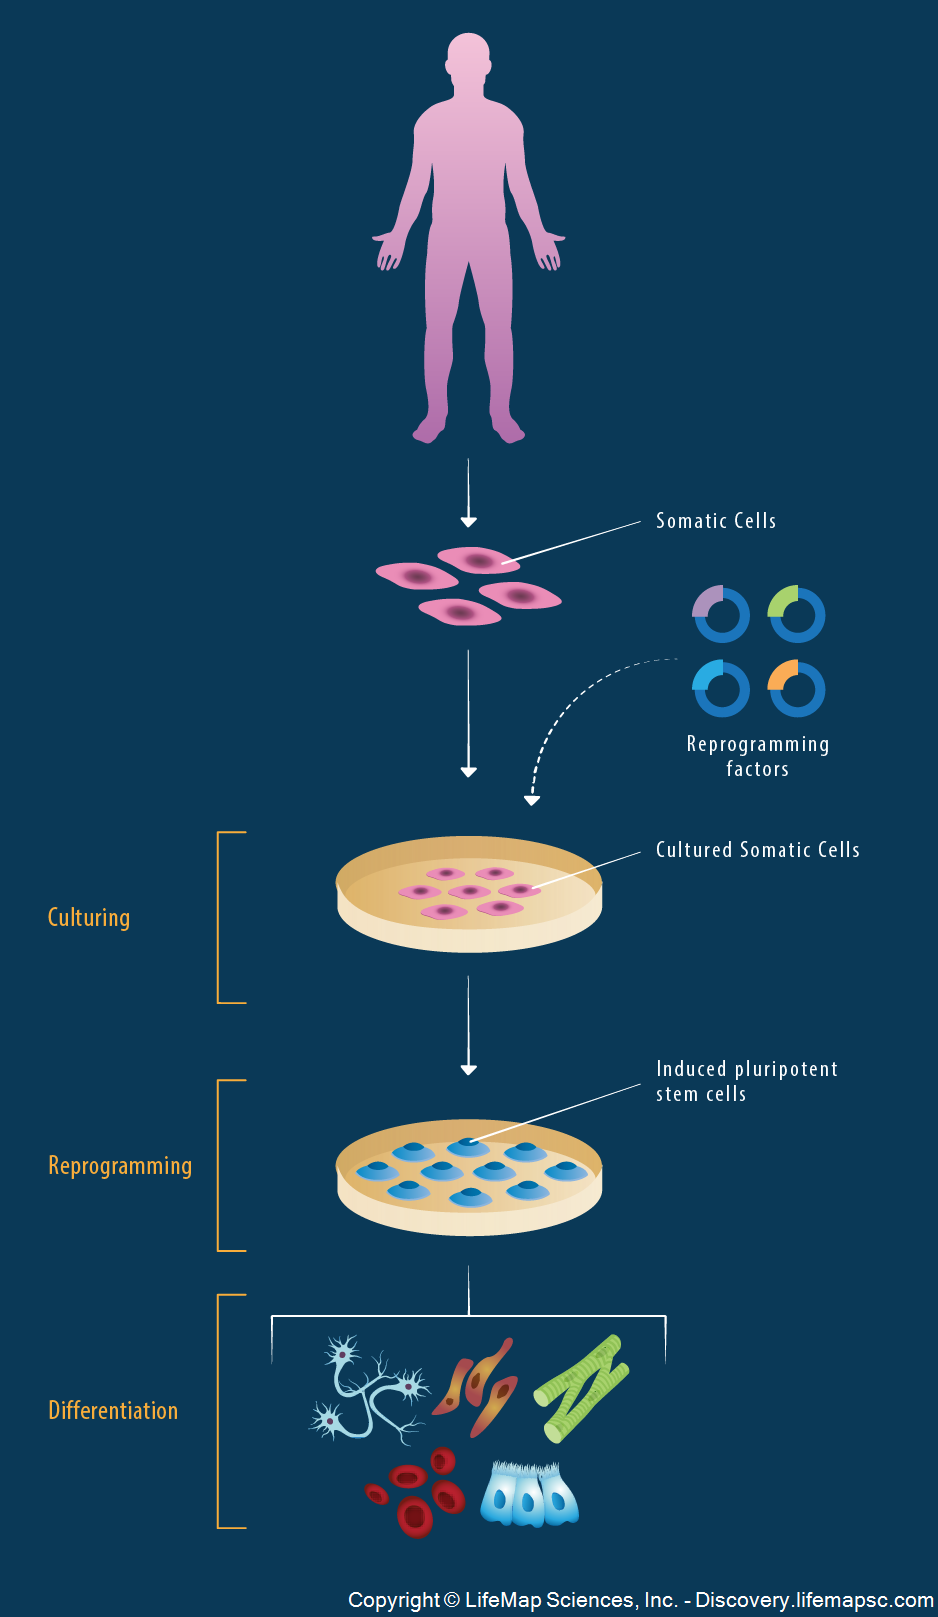 Derivation of Induced Pluripotent Stem Cells